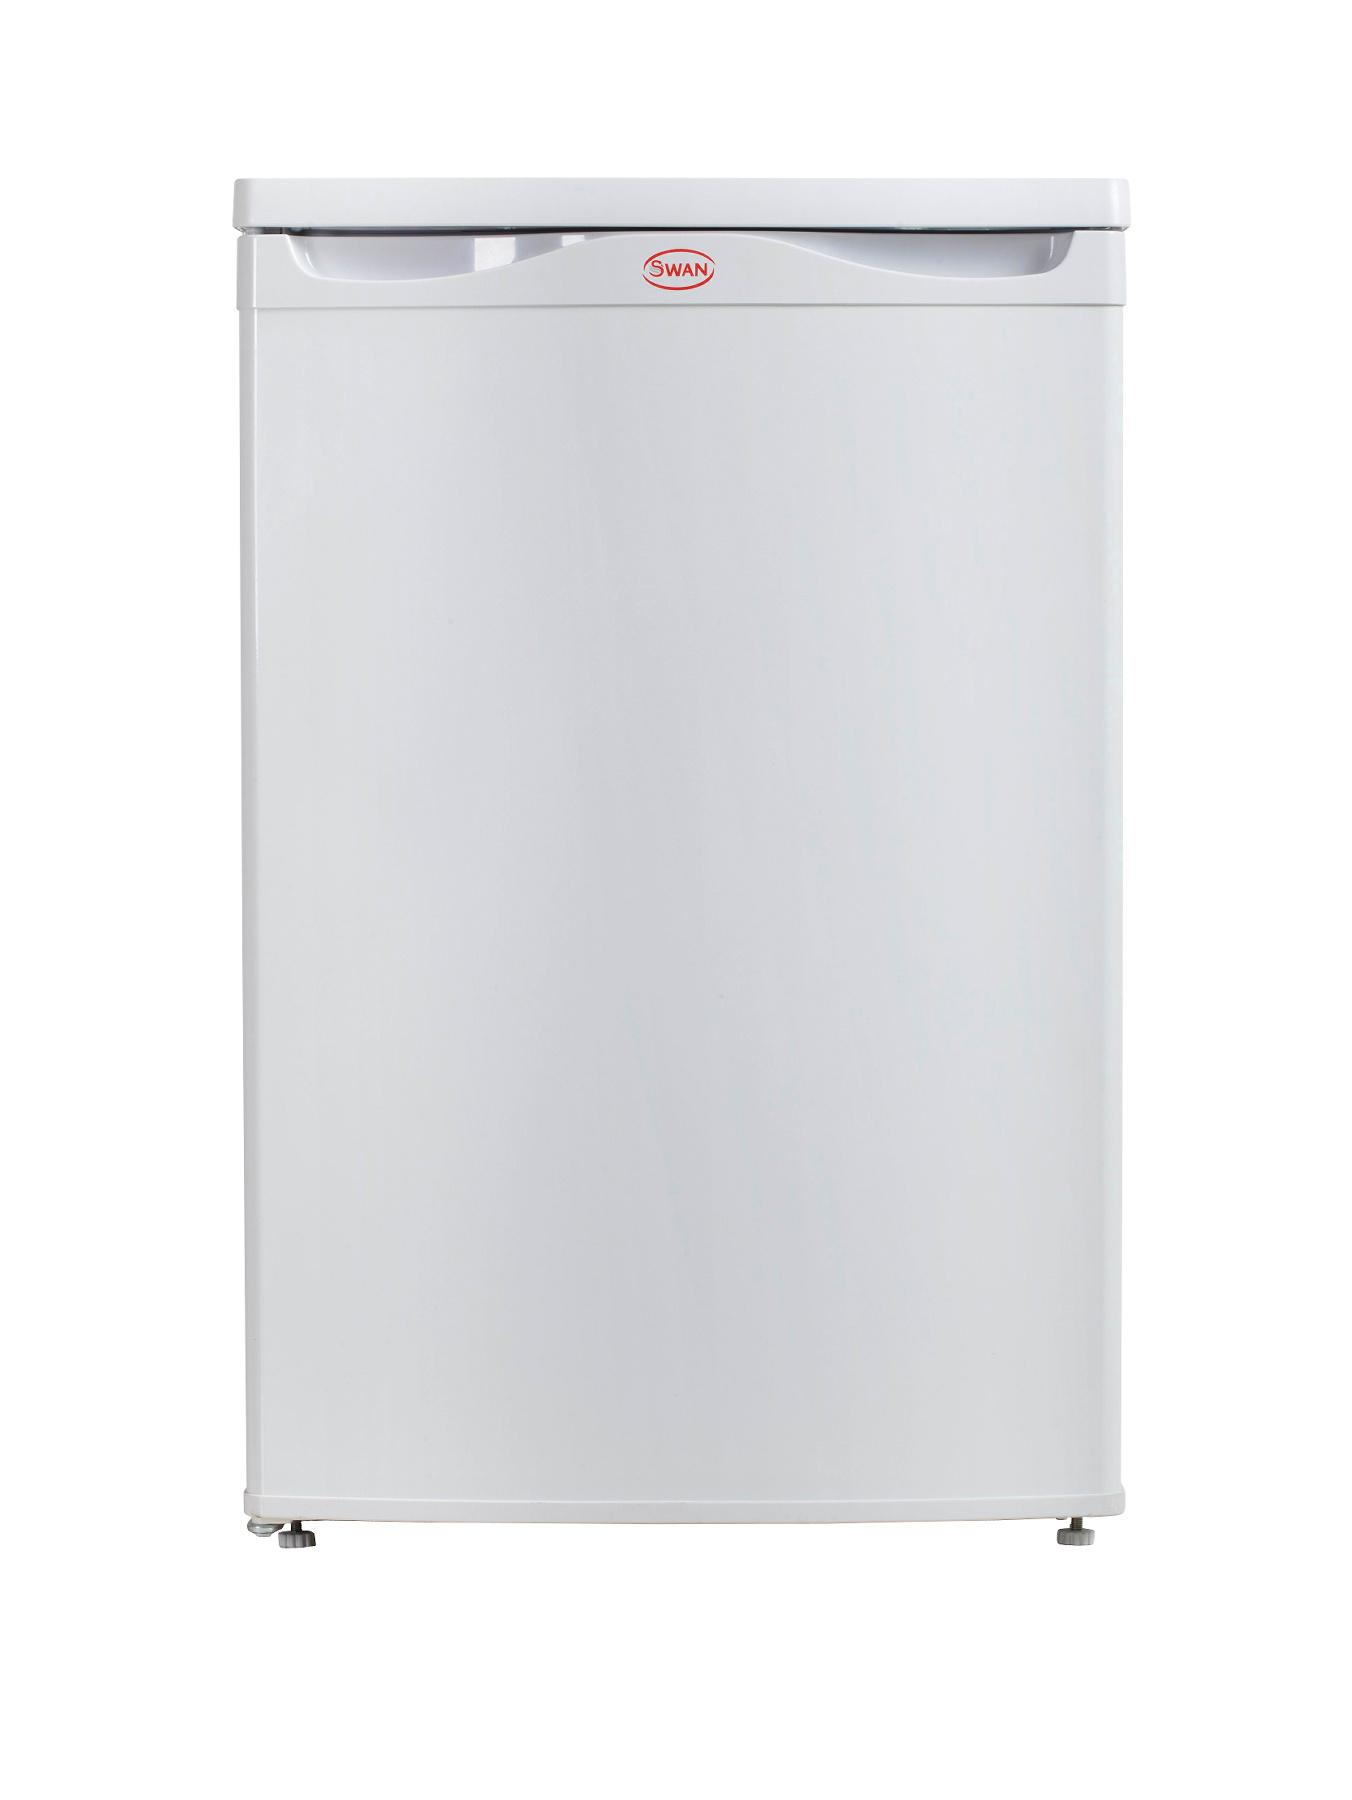 SR5141W 55cm Under-Counter Larder Fridge - White at Littlewoods